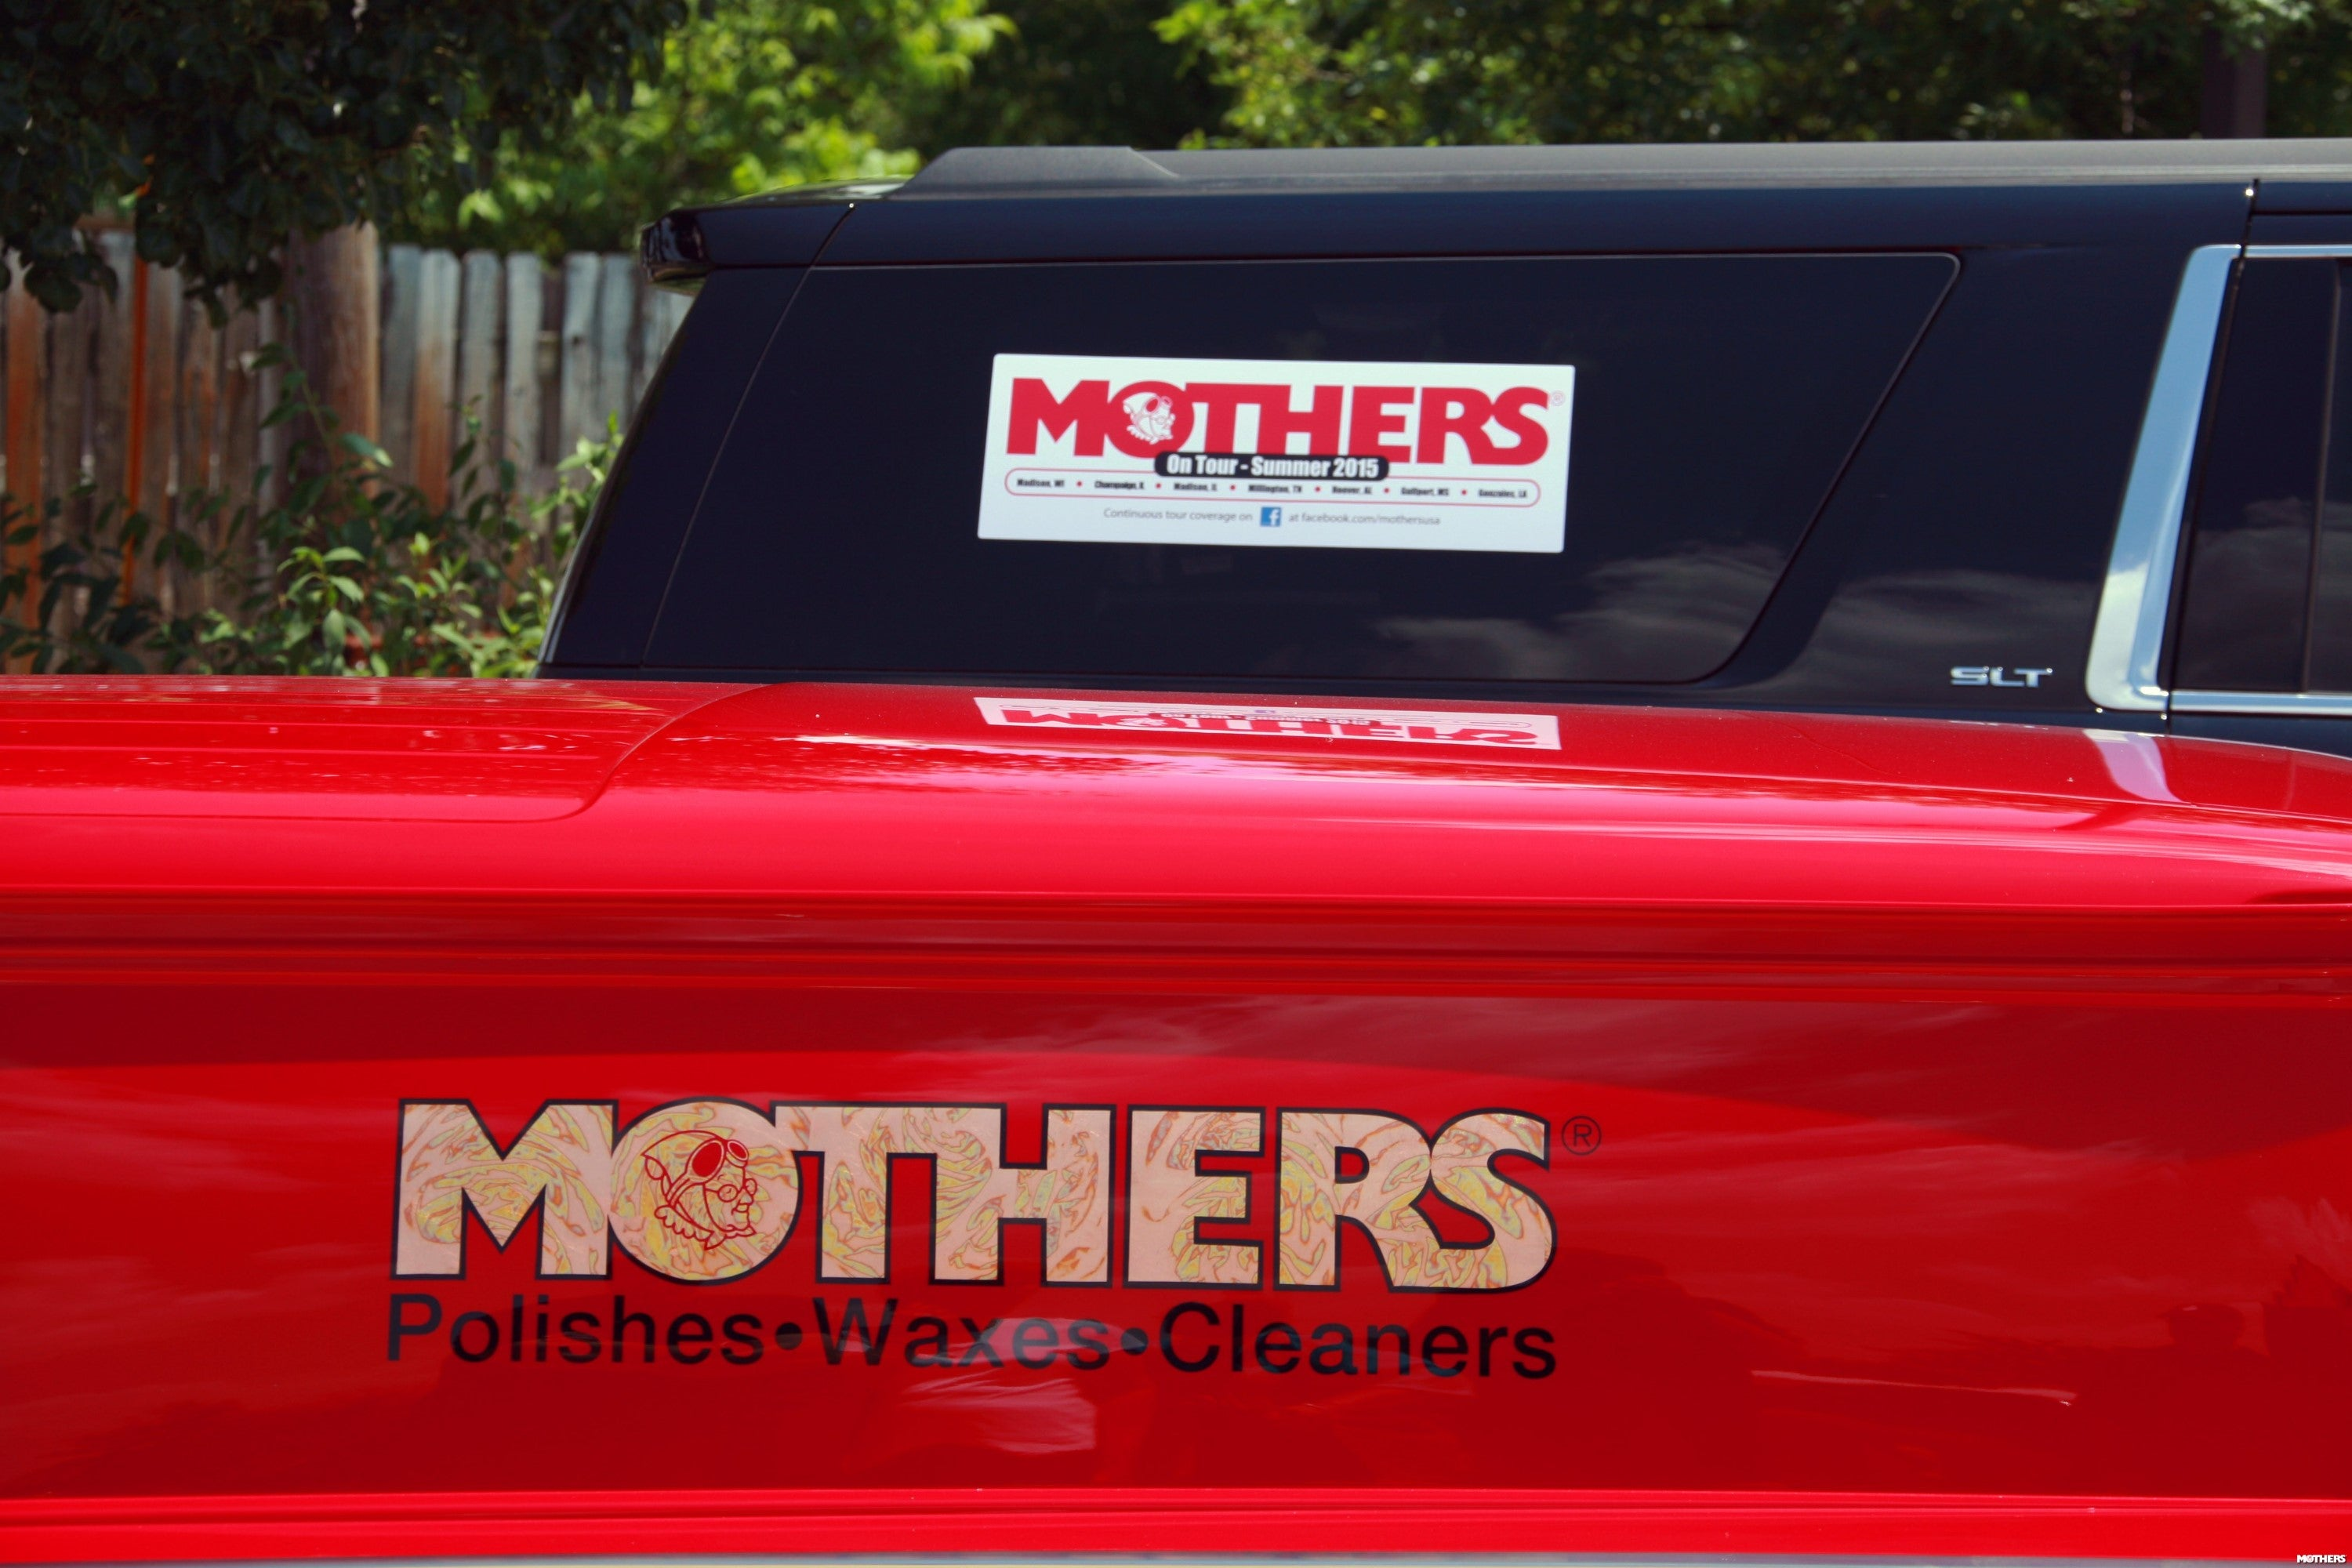 branded Mothers vehicle